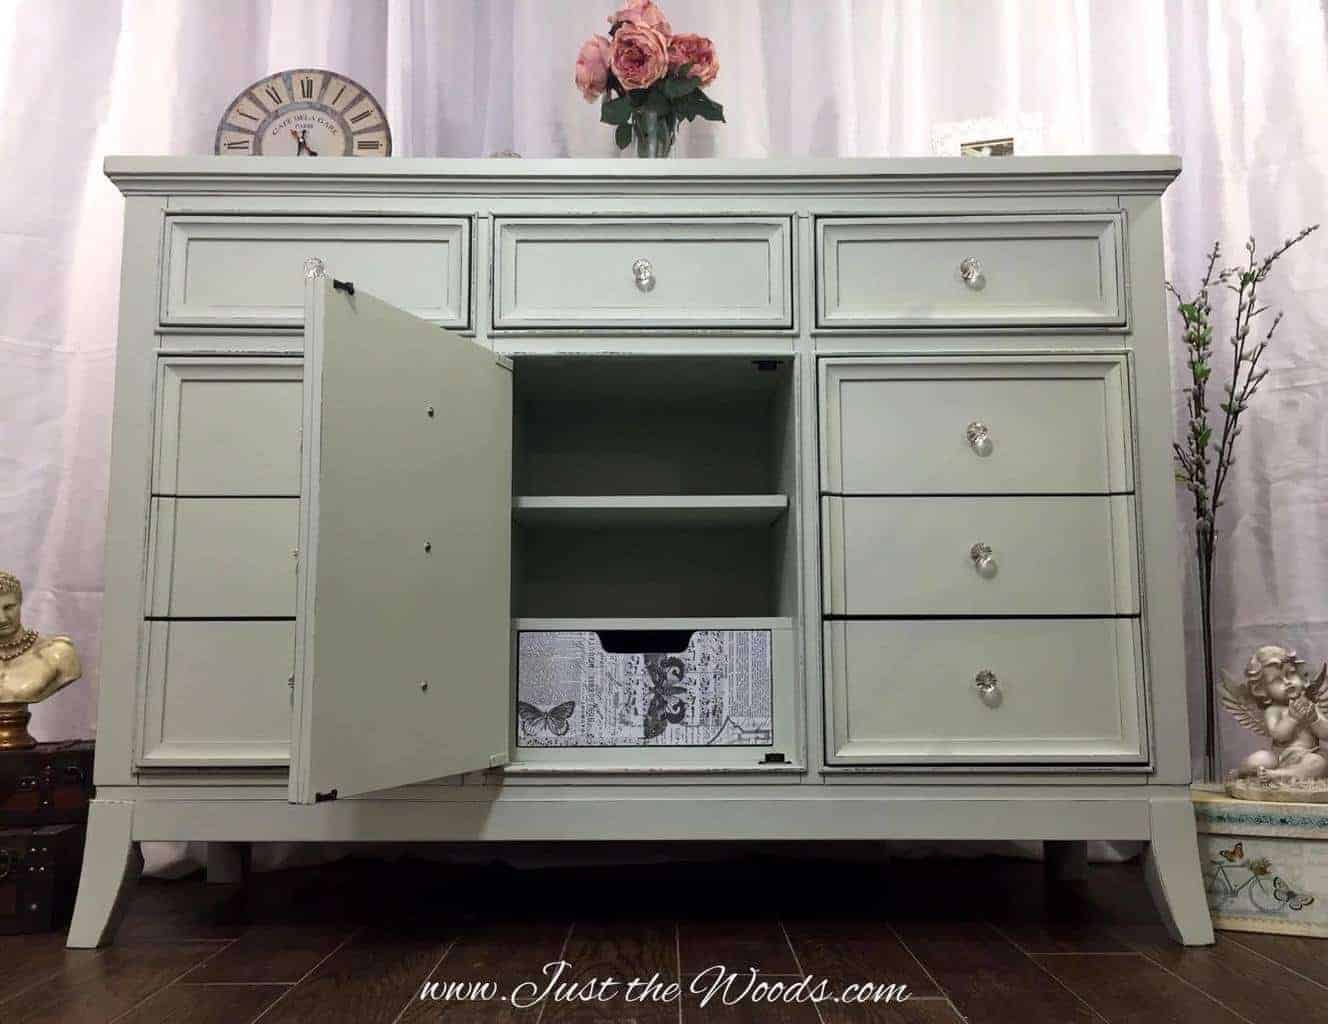 Painting furniture shabby chic - Modern To Shabby Chic Decoupaged Dresser